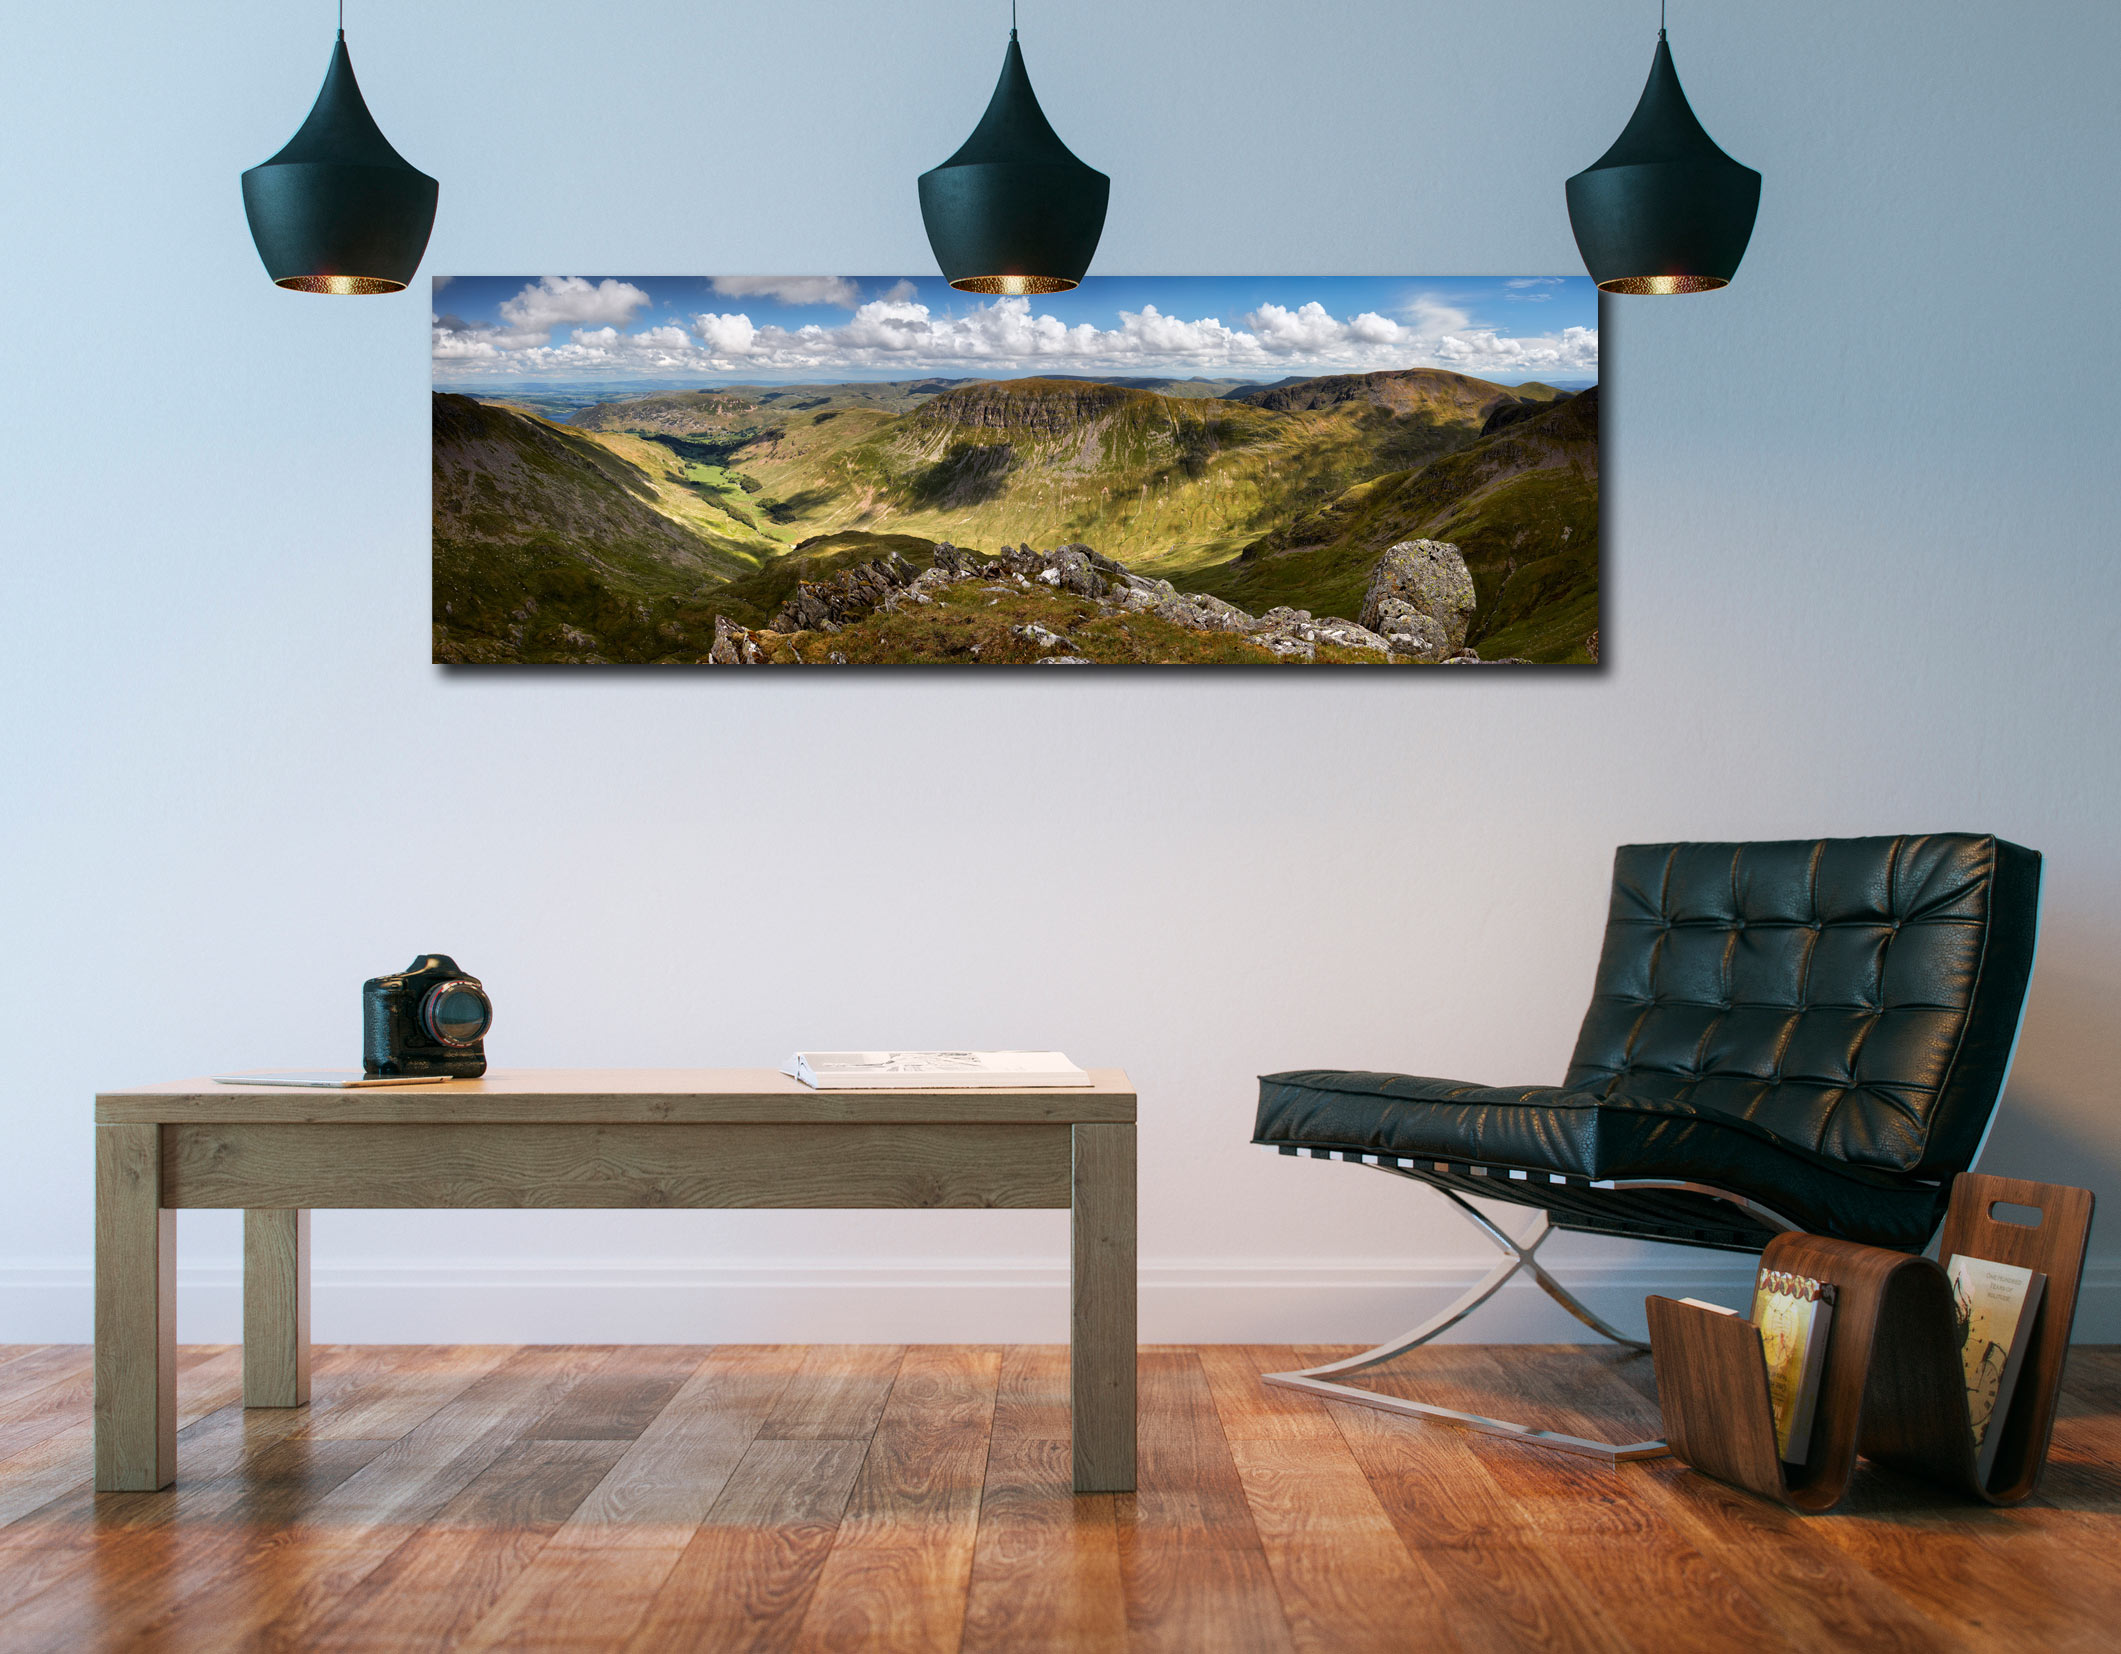 View from Helvellyn over the Grisedale Valley to St Sunday Crag - Print Aluminium Backing With Acrylic Glazing on Wall